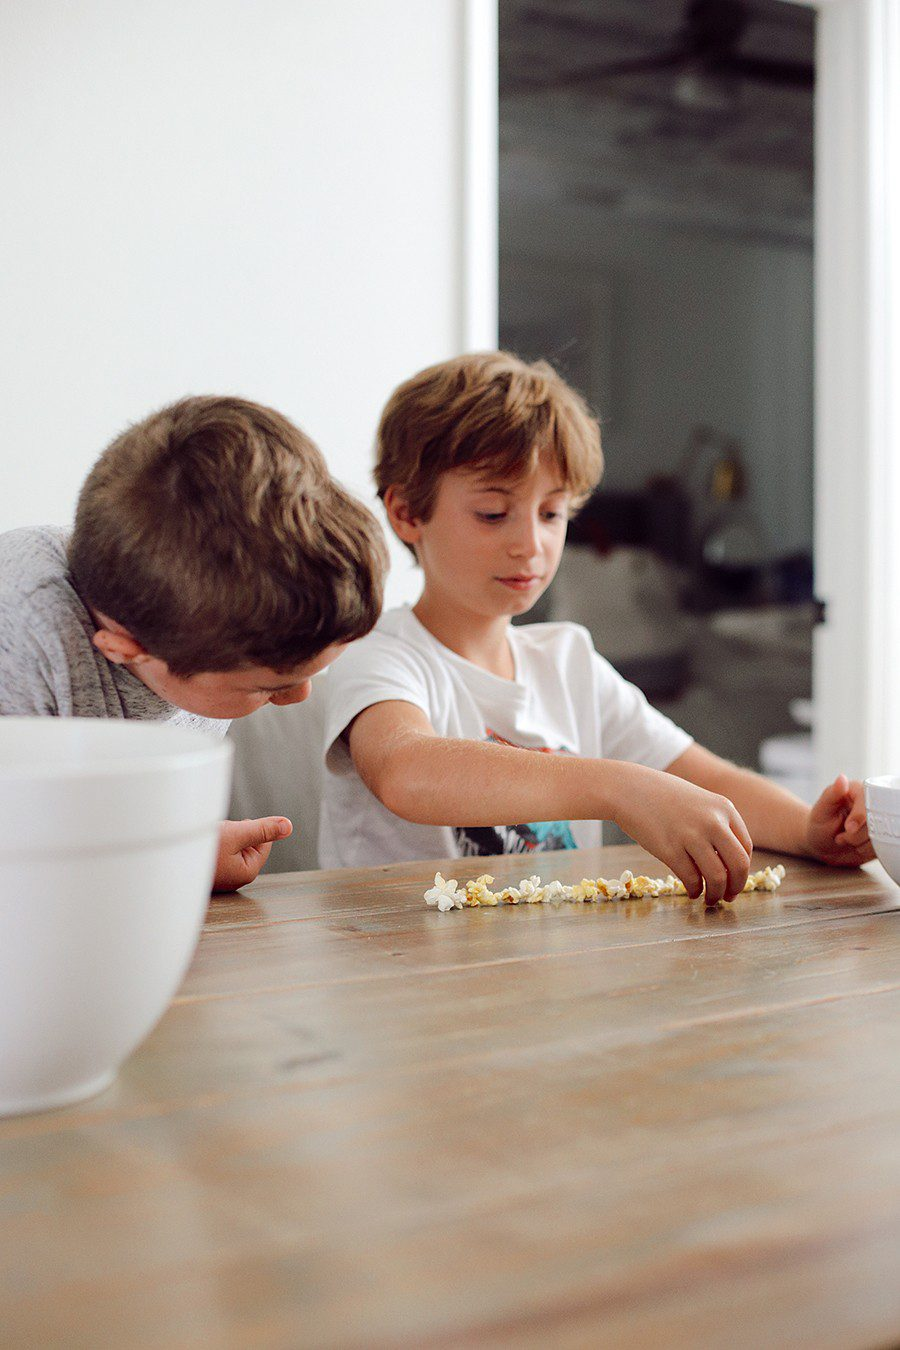 Popcorn charades and more popcorn games for family game night! | Family Fun Night by popular Florida lifestyle blog, Fresh Mommy Blog: image of two boys lining up some popcorn on a table.